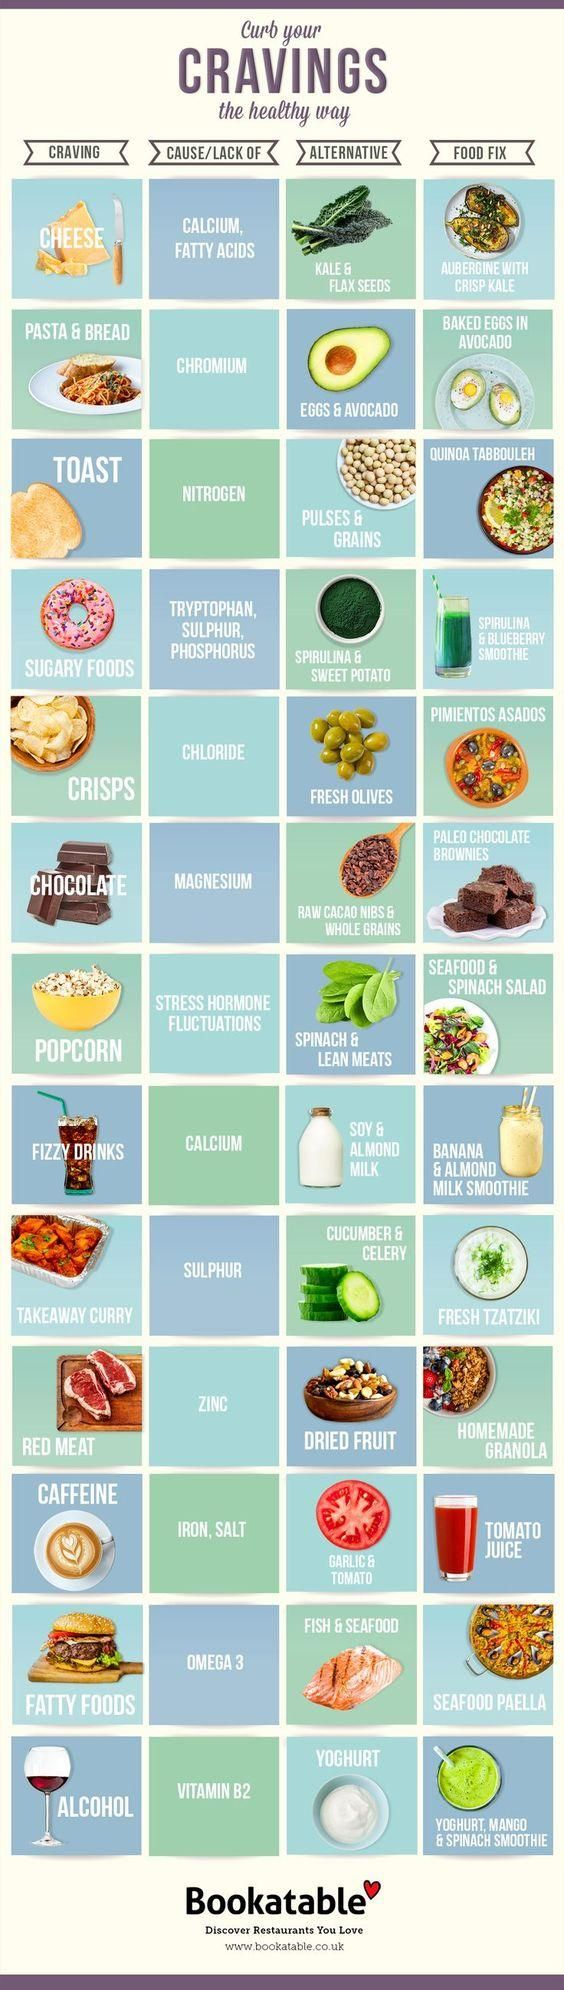 Diet plan for healthy life - 158 Best Weight Loss Tips Images On Pinterest 2 Week Diet Plan 7 Day Diet And Best Diet Plan